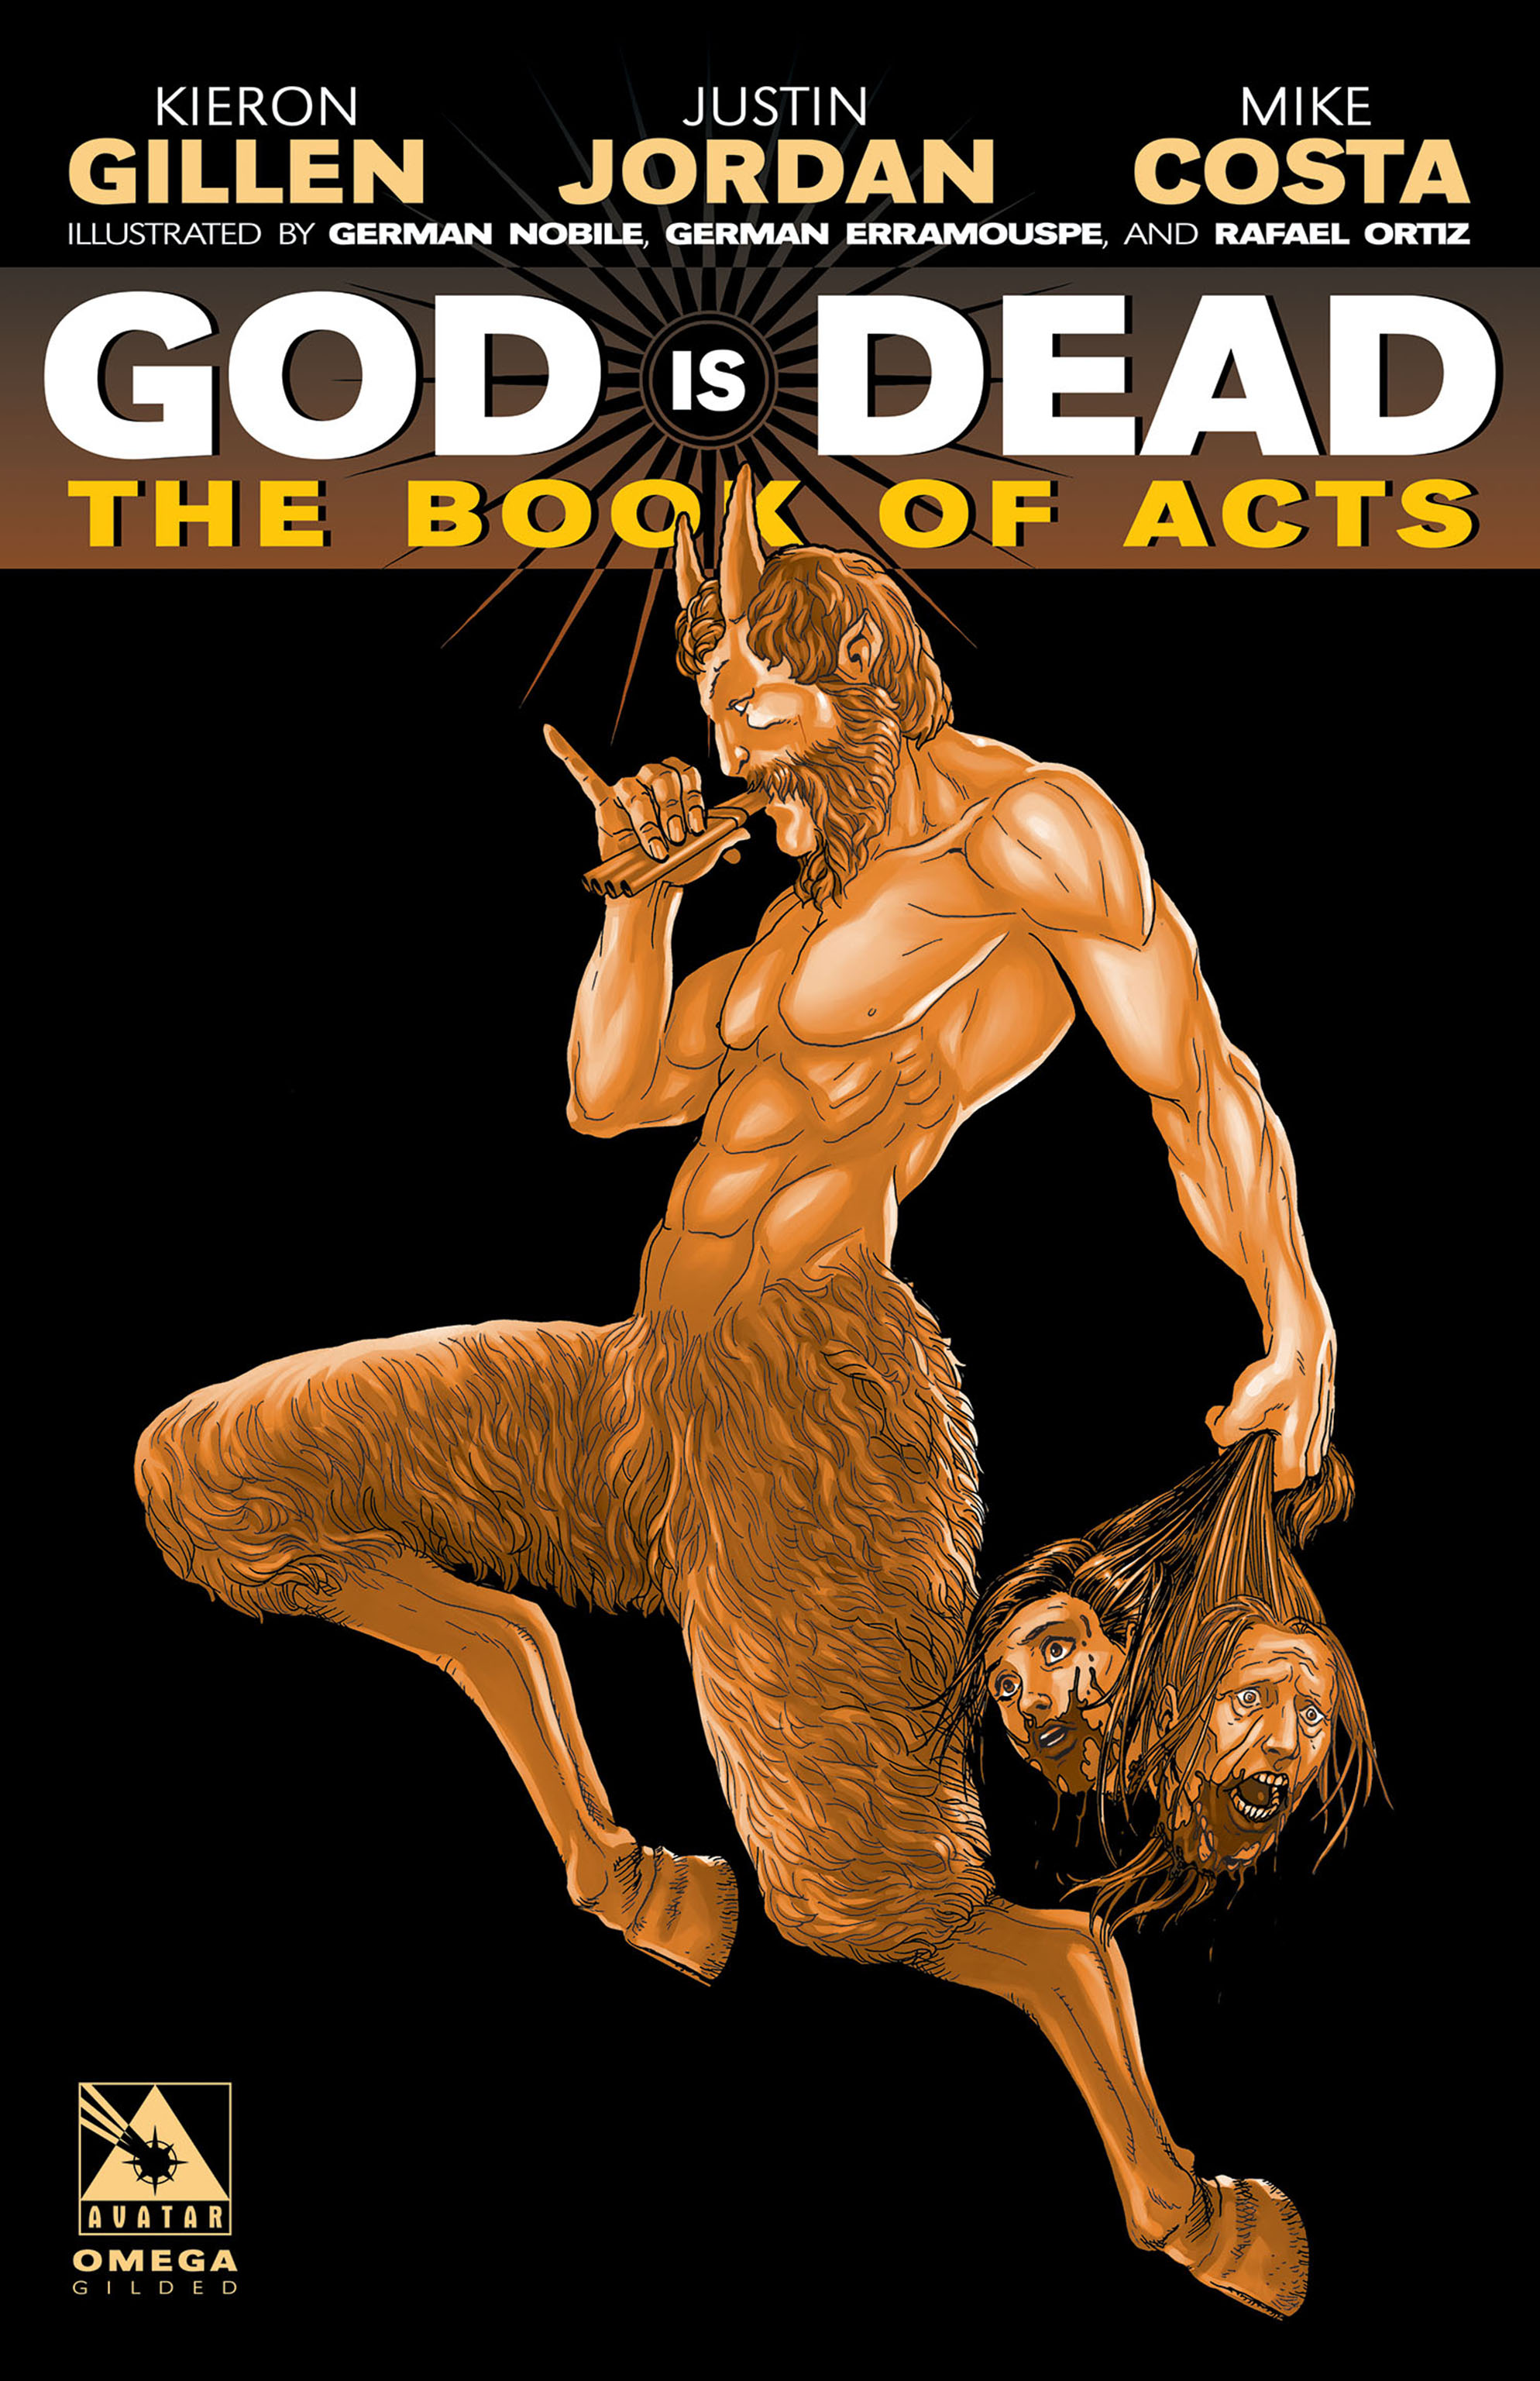 Read online God is Dead: Book of Acts comic -  Issue # Omega - 5